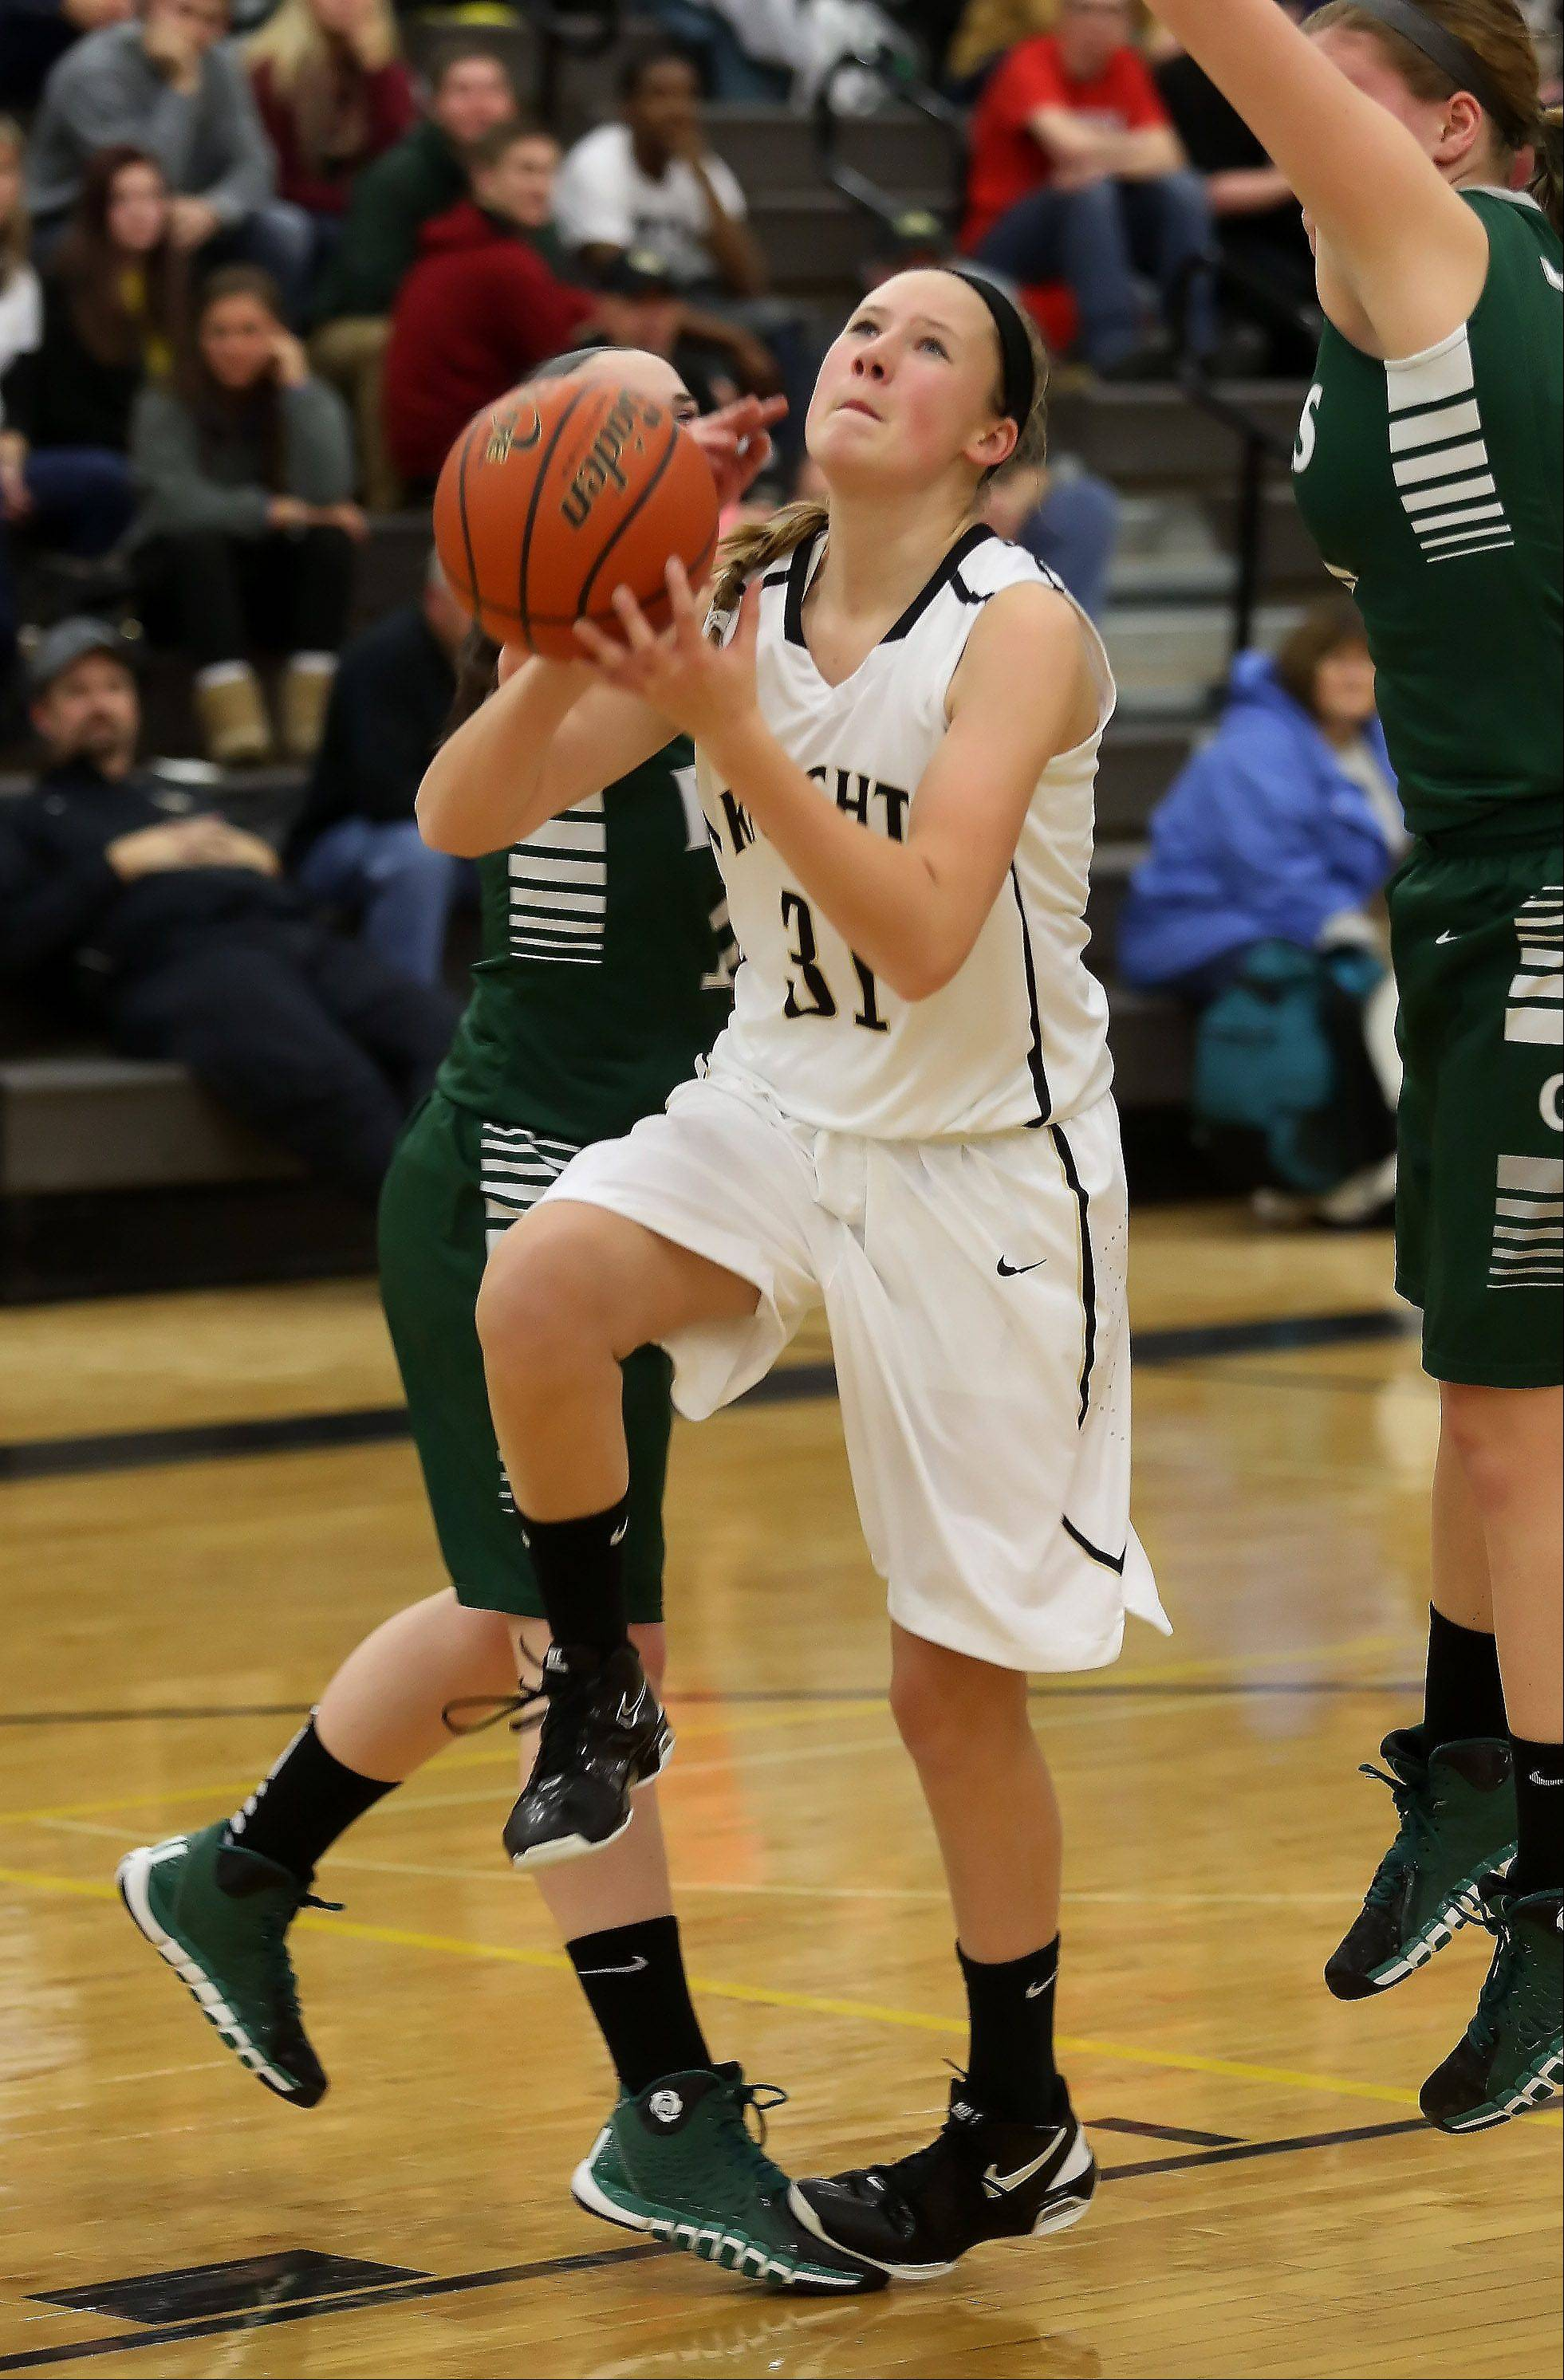 Grayslake North guard Kayla Hartigan is fouled as she goes up for a layup.